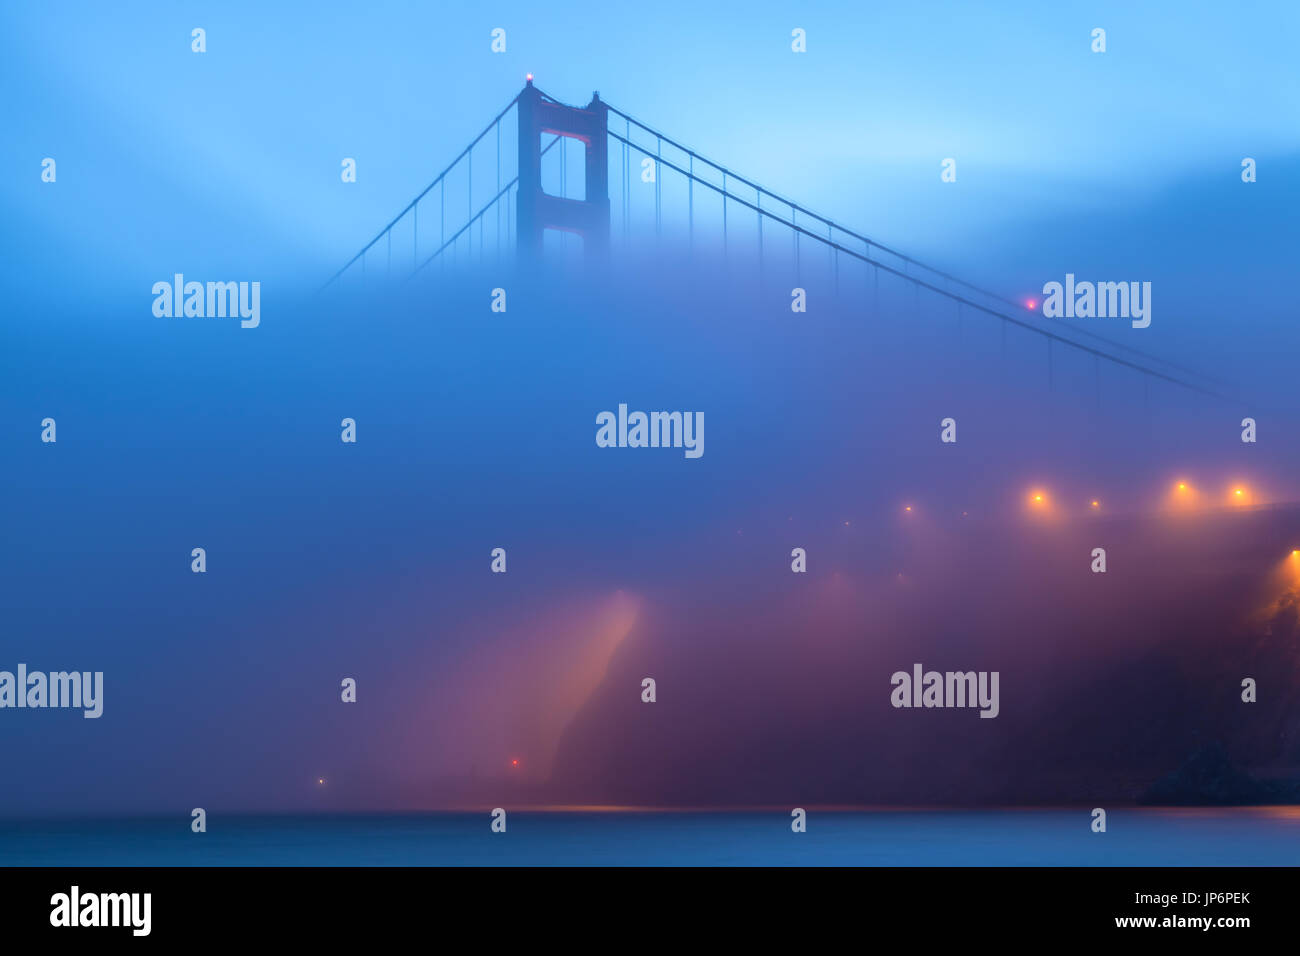 La tombée de la nuit le brouillard couvrait une partie du golden gate bridge à San Francisco, Californie. Photo Stock